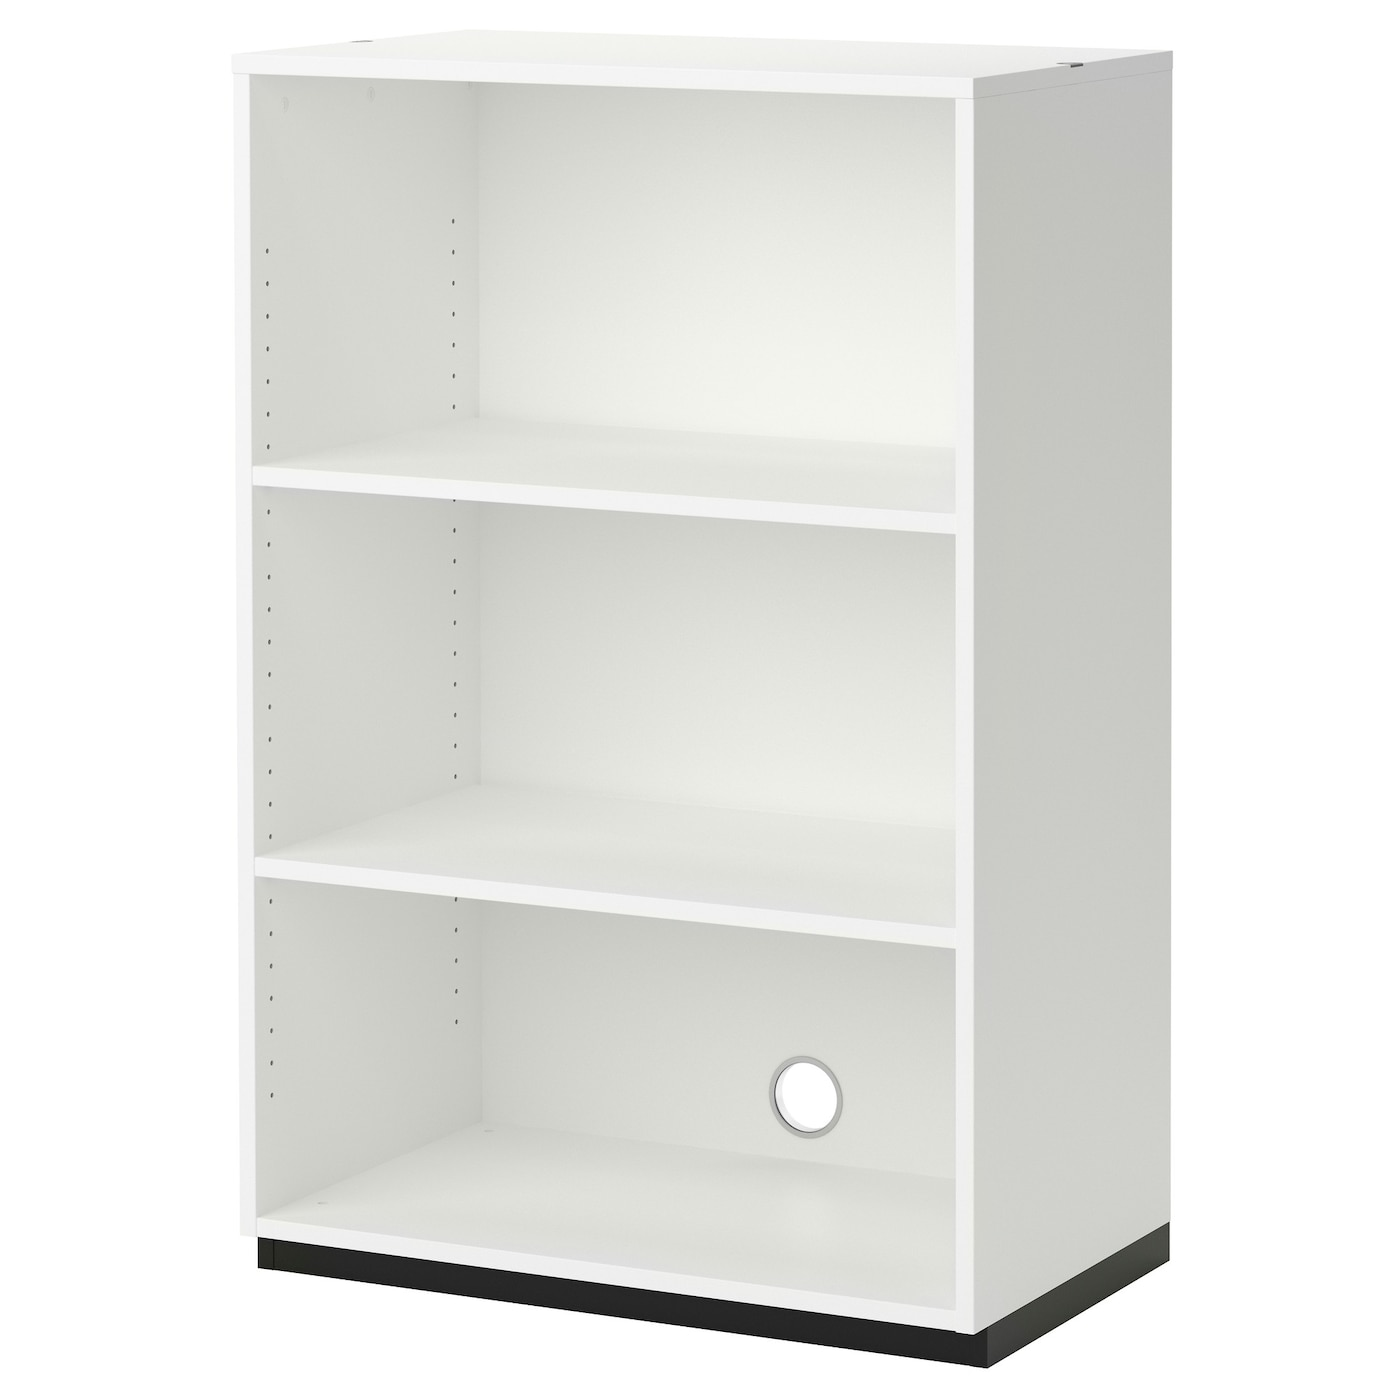 galant shelf unit white 80x120 cm ikea. Black Bedroom Furniture Sets. Home Design Ideas